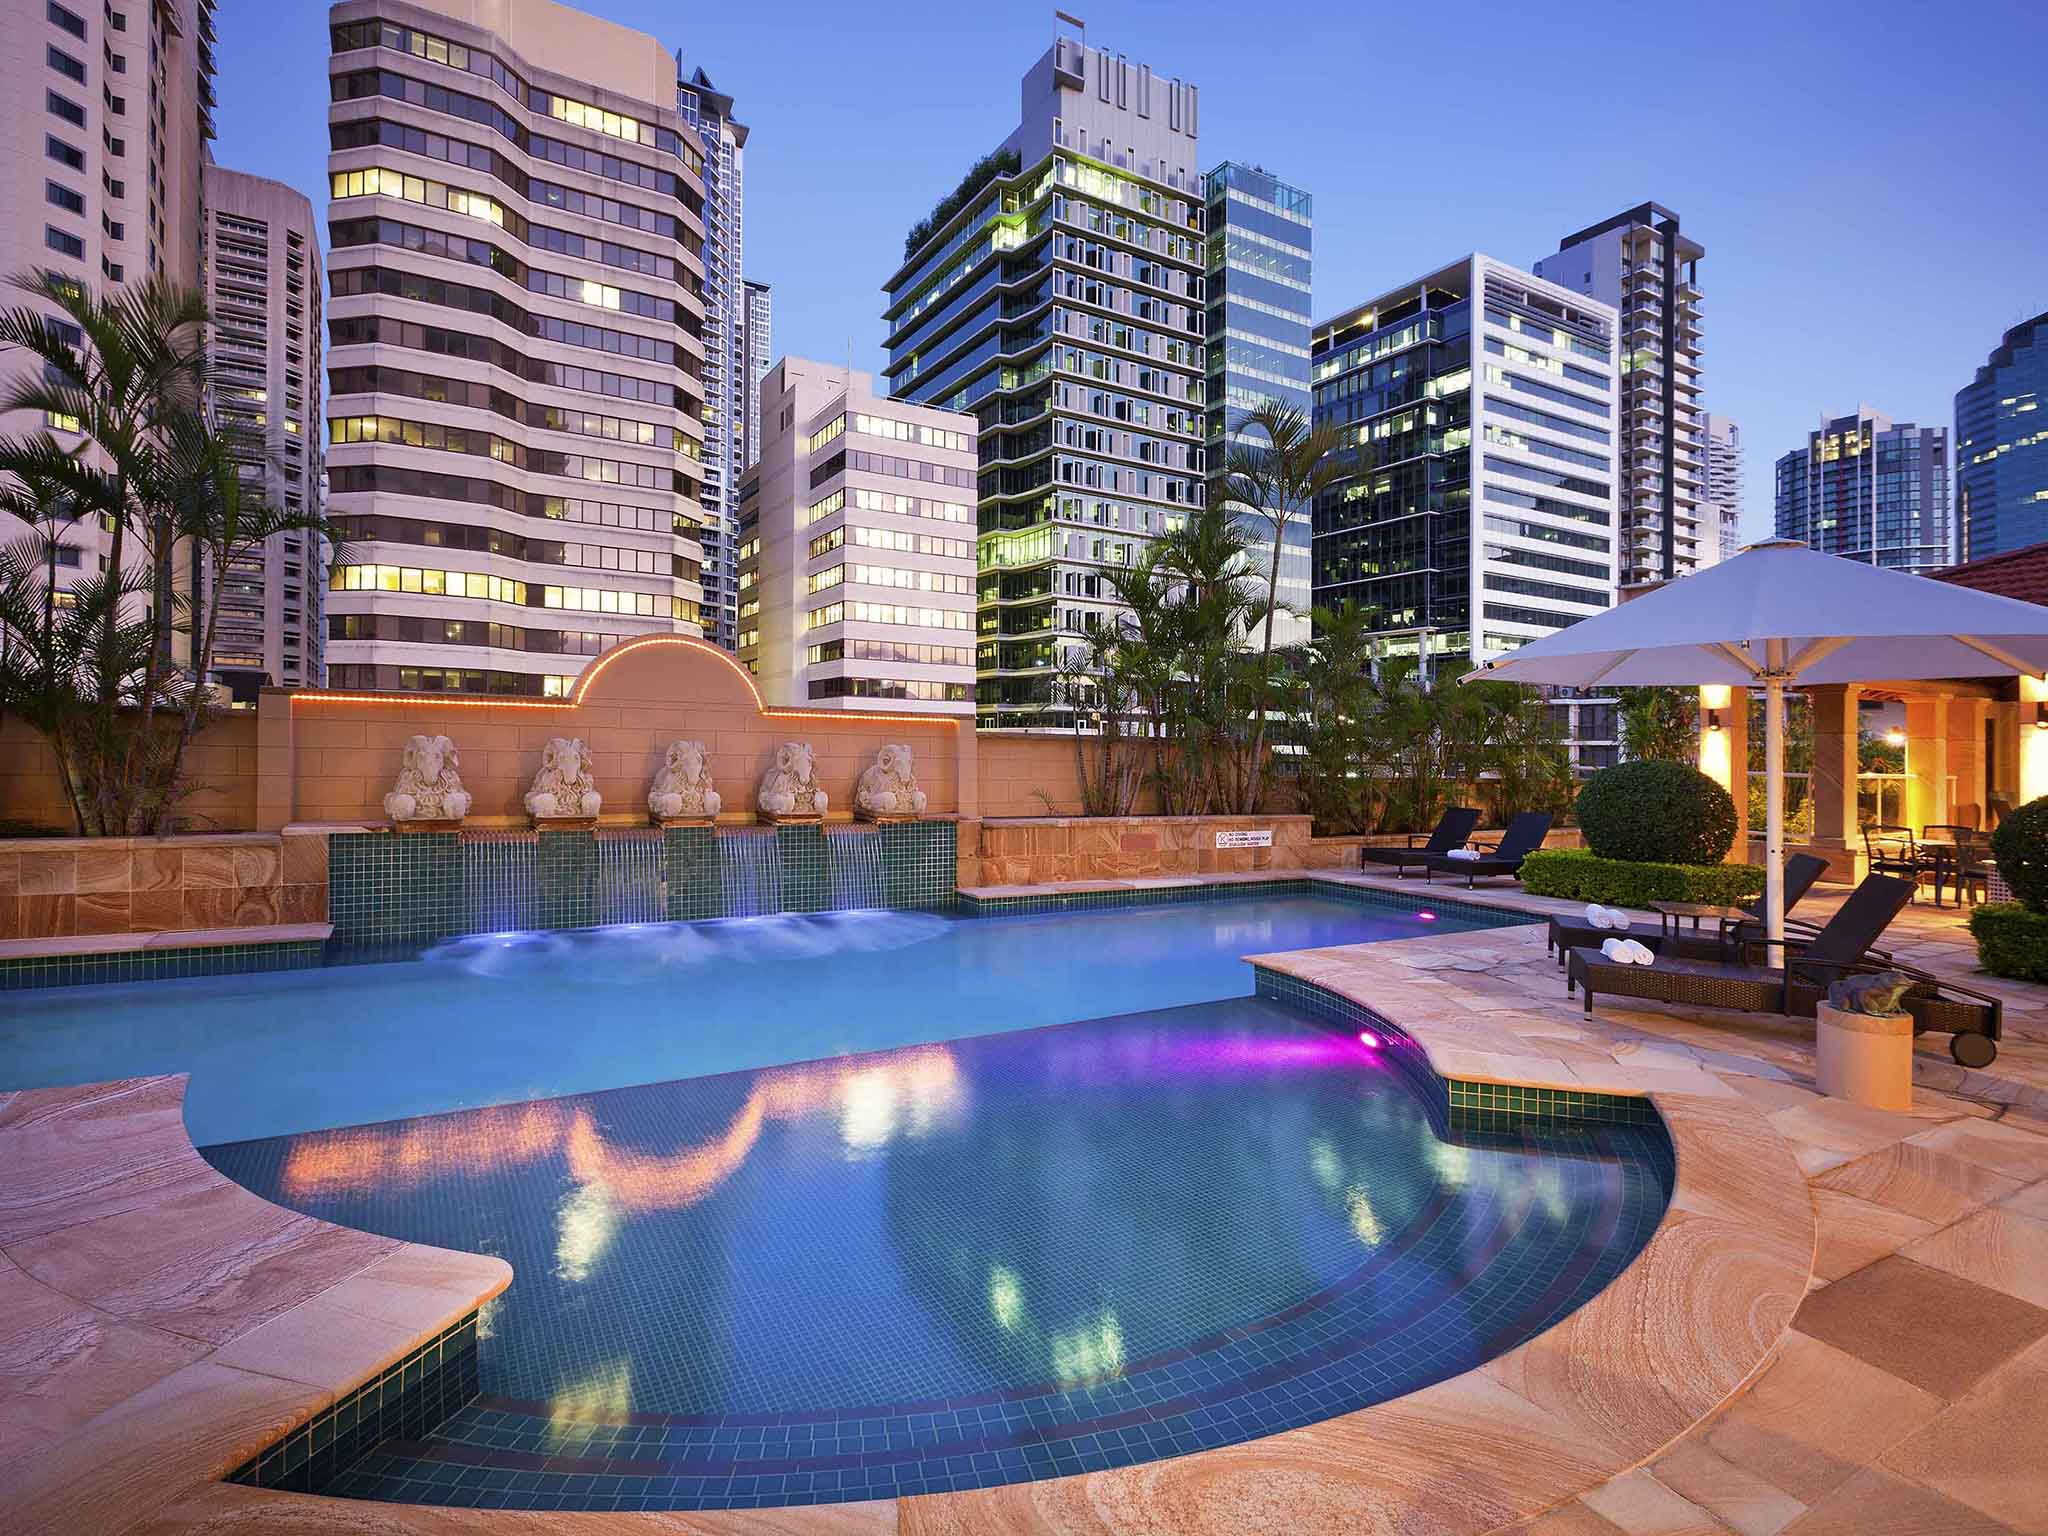 โรงแรม – The Sebel Quay West Brisbane